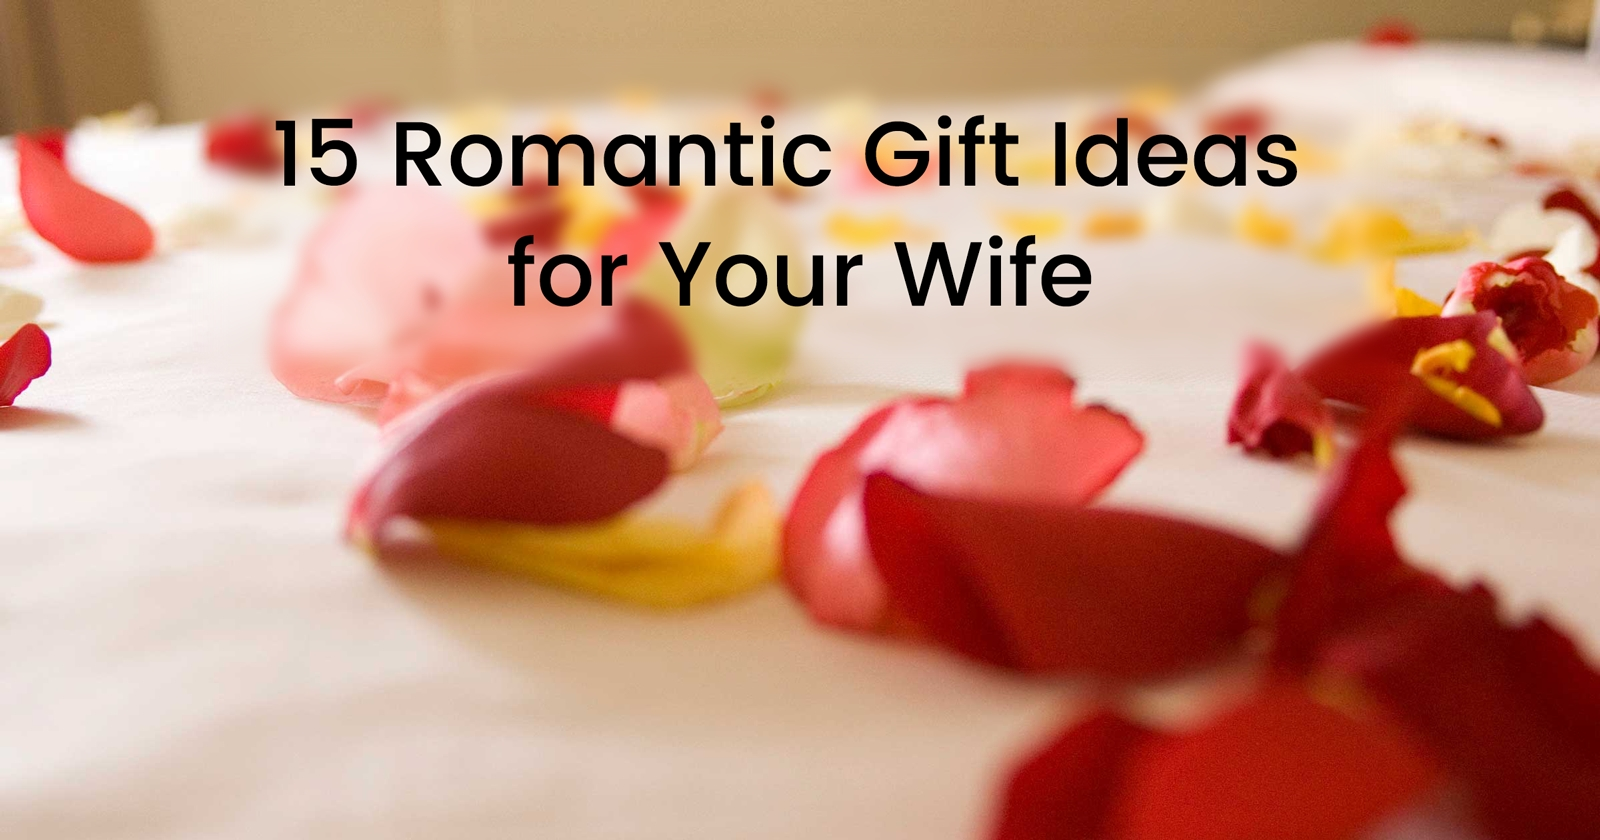 10 Nice Birthday Gift Idea For Wife 15 romantic gift ideas for your wife gift help 8 2021